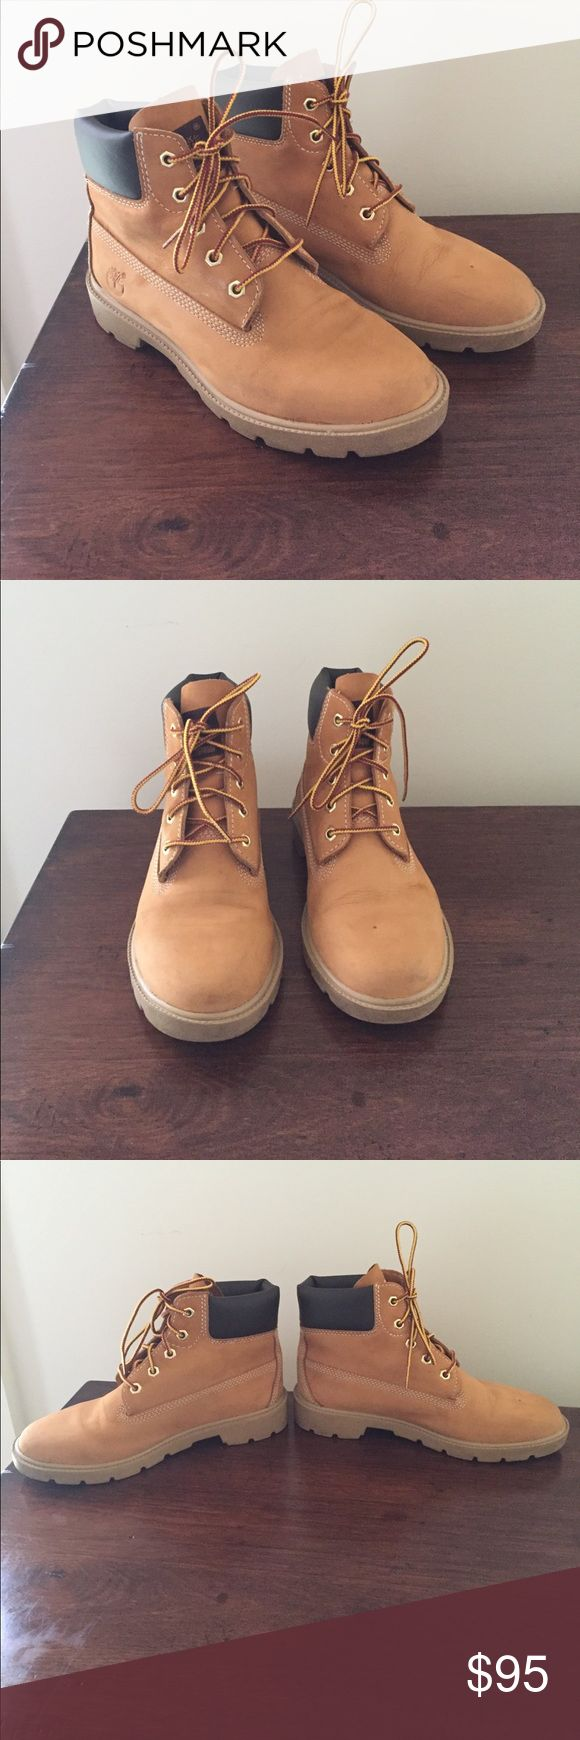 Timberland boots Real Timberland boots. Waterproof boots in great shape. Interior, exterior, laces, and sole all in great shape, worn in but no where near worn out! Some creasing by toe but can't be seen unless looking for it. Boys size 4 Timberland Shoes